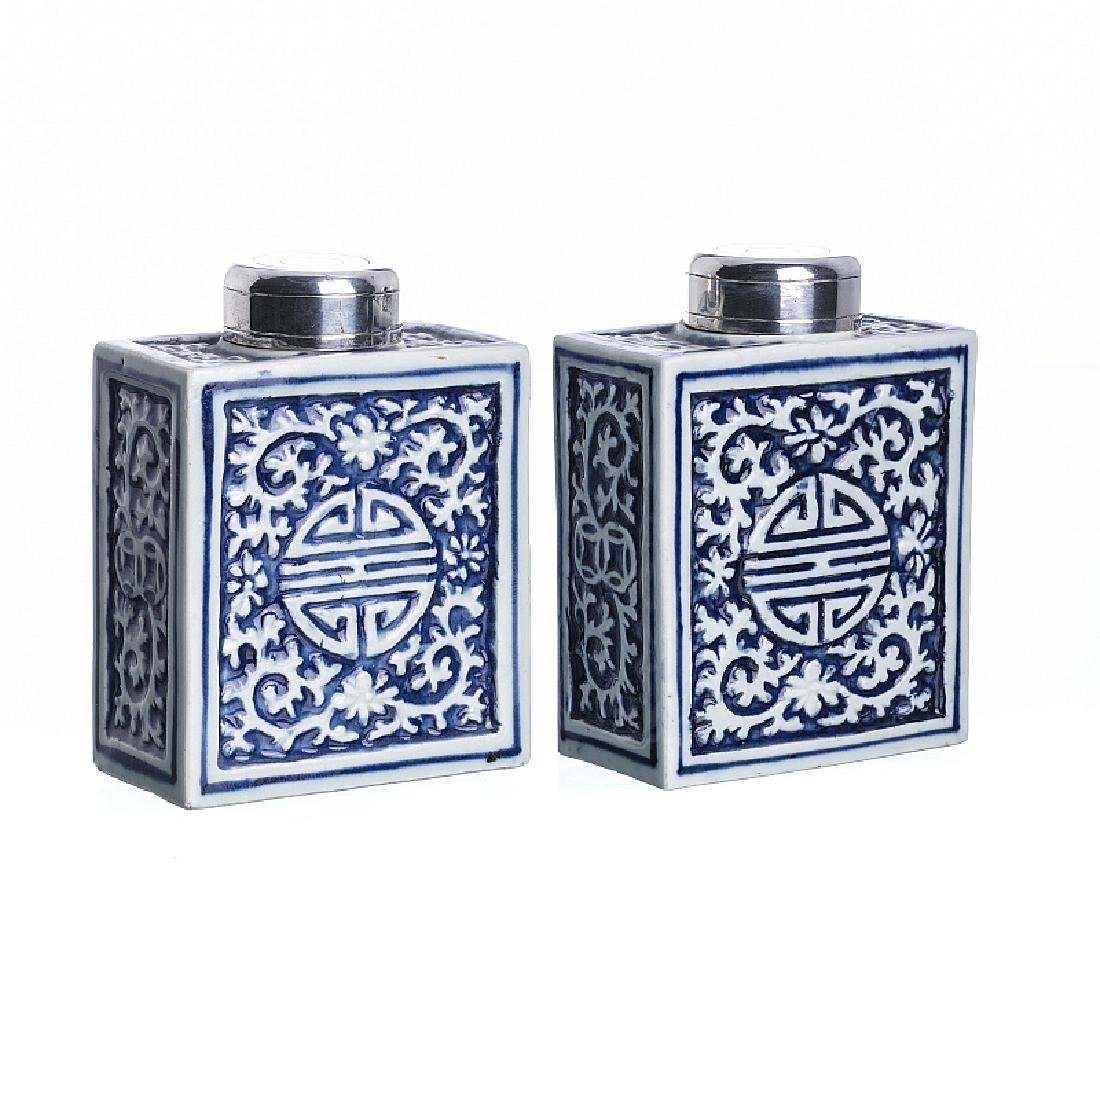 Pair of tea caddy in Chinese porcelain, Jiaqing